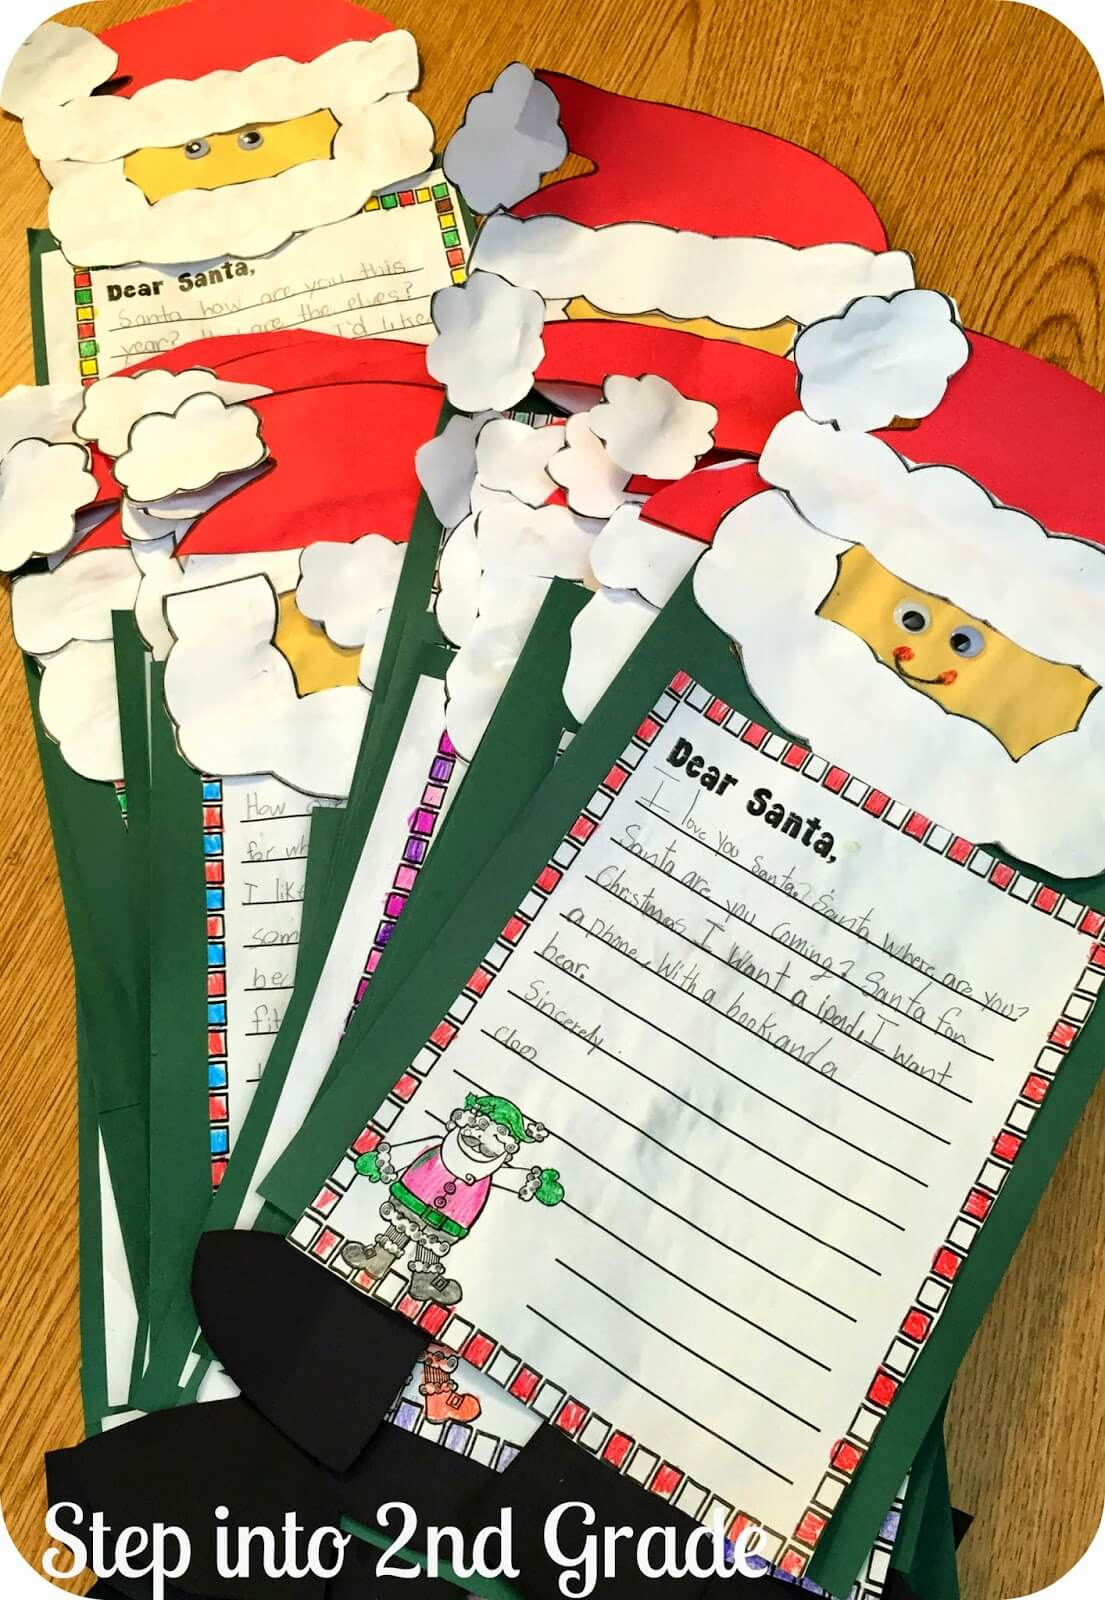 We Started Pre Writing Yesterday Just To Get Our Minds Thinking About Christmas Wishes I Used This Paper That You Can Pick Up Here For